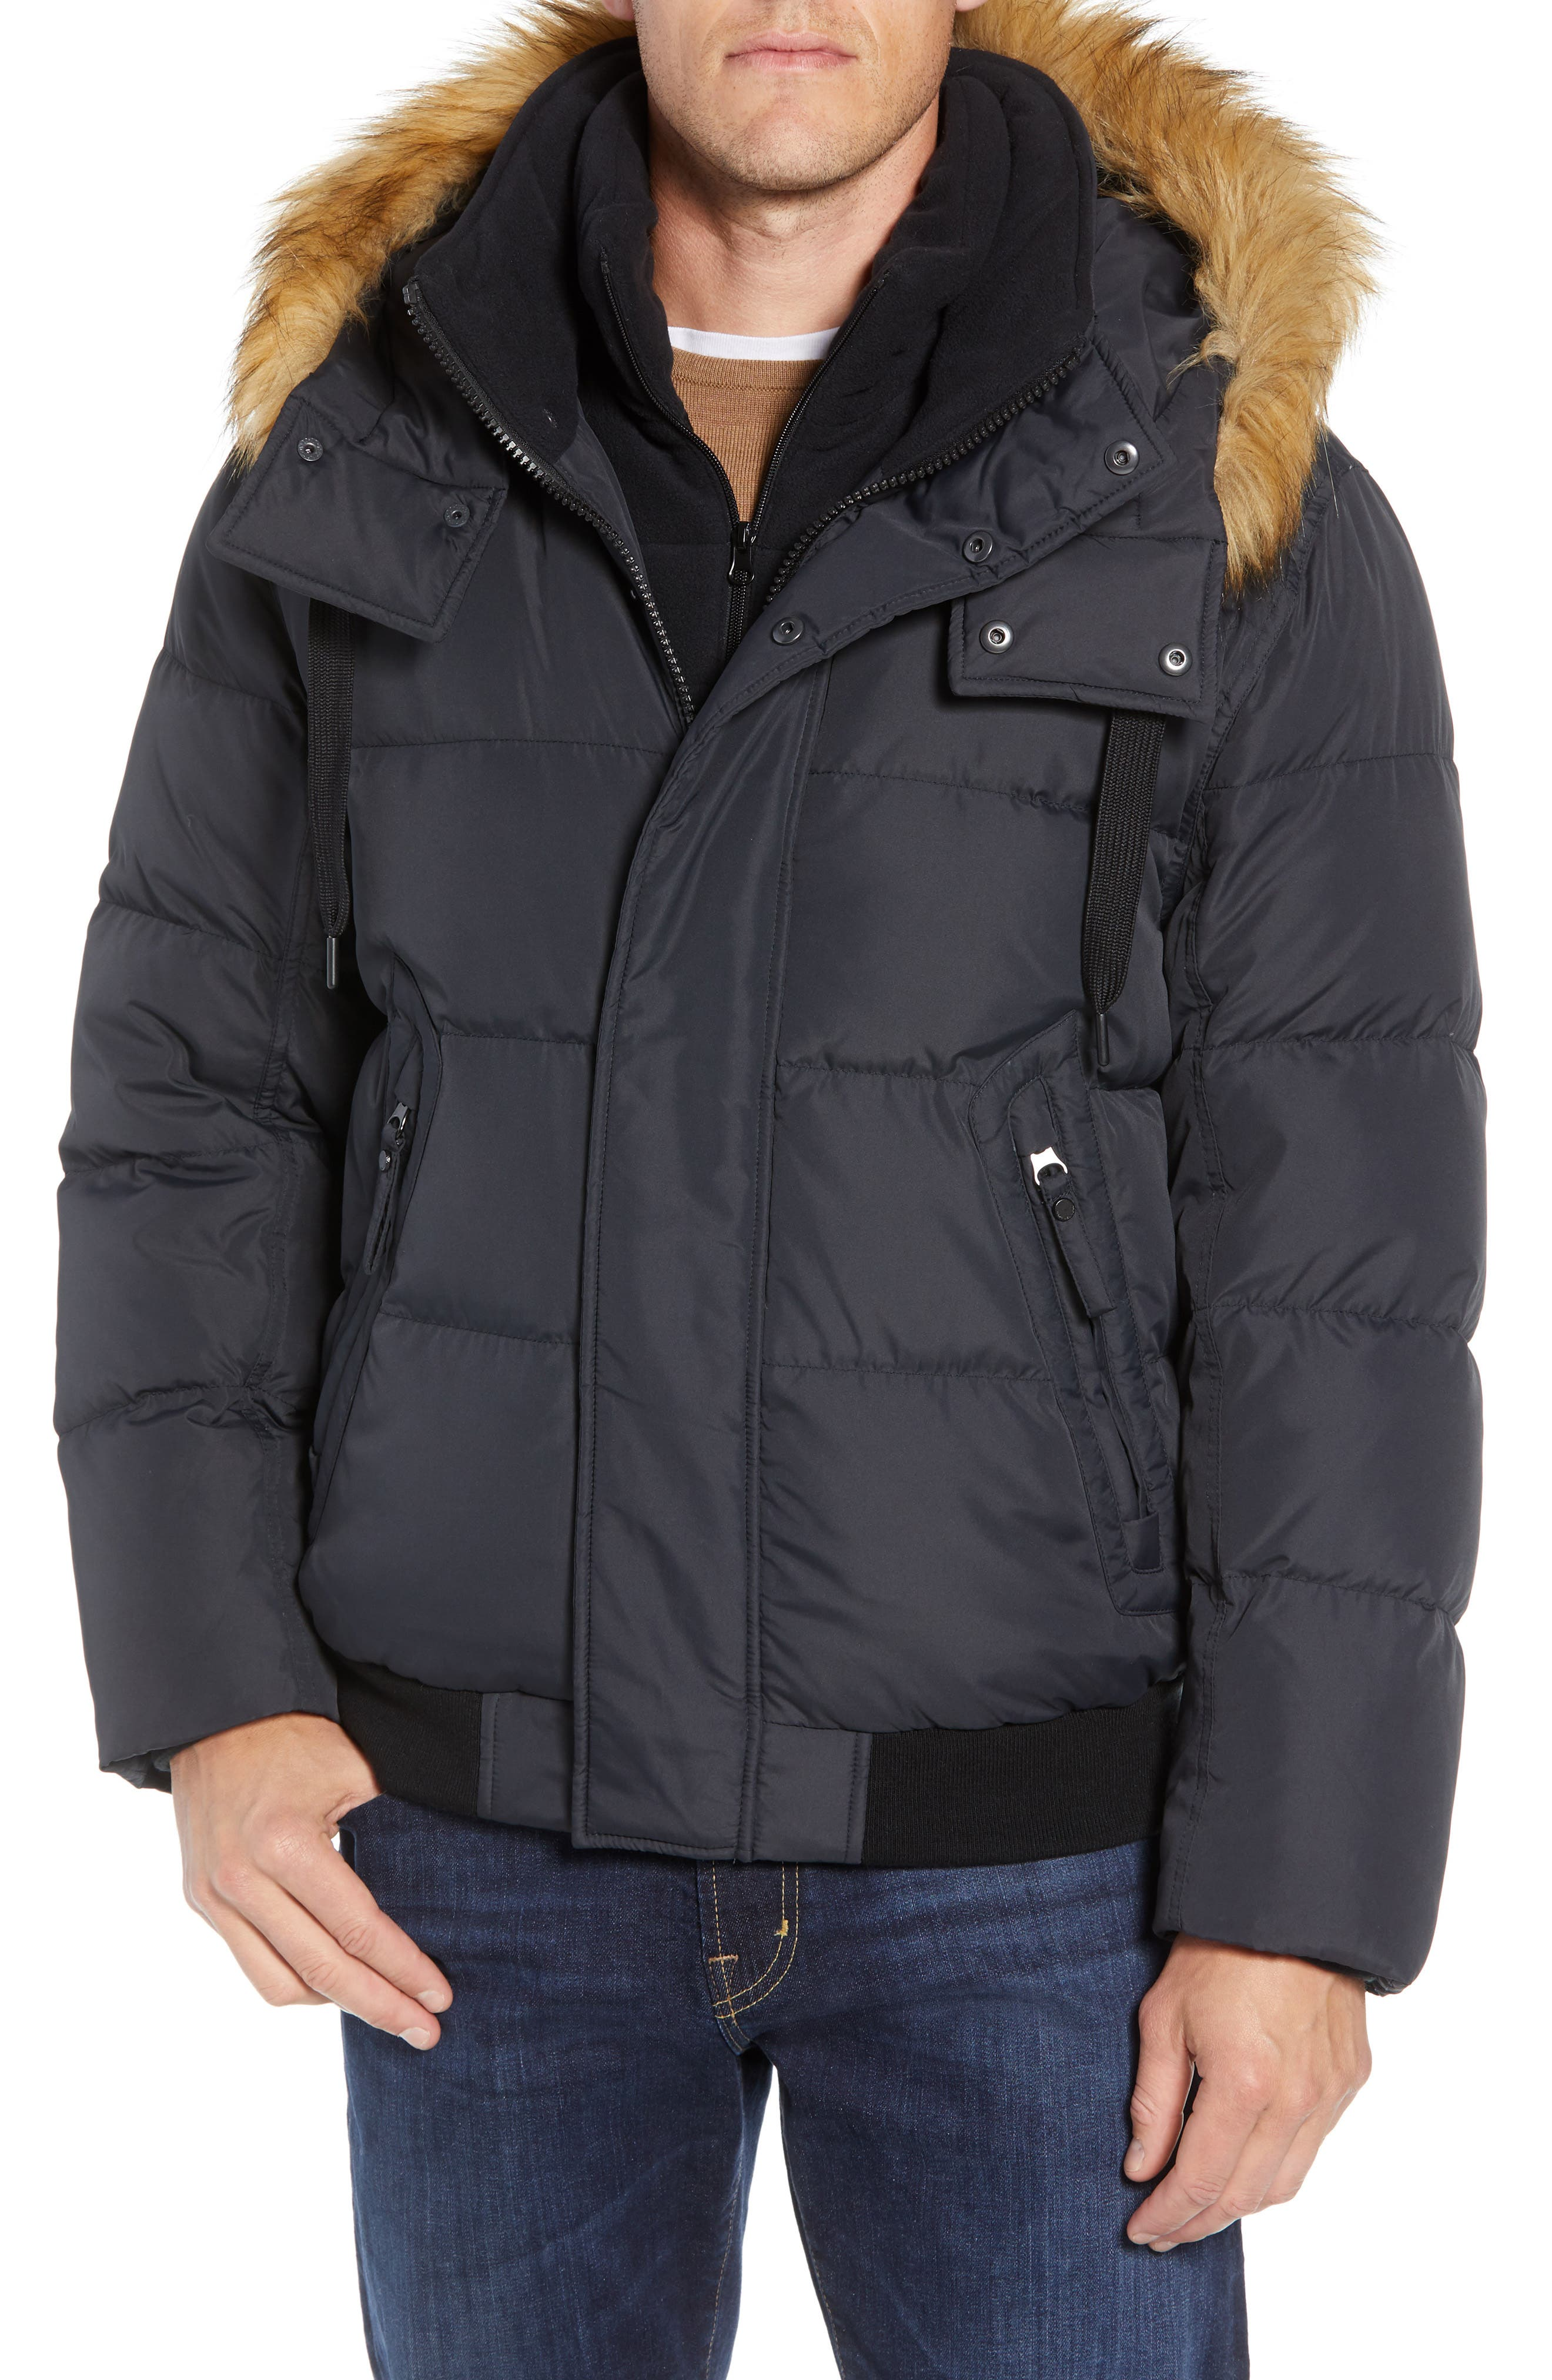 Clermont Insulated Bomber Jacket,                             Main thumbnail 1, color,                             BLACK